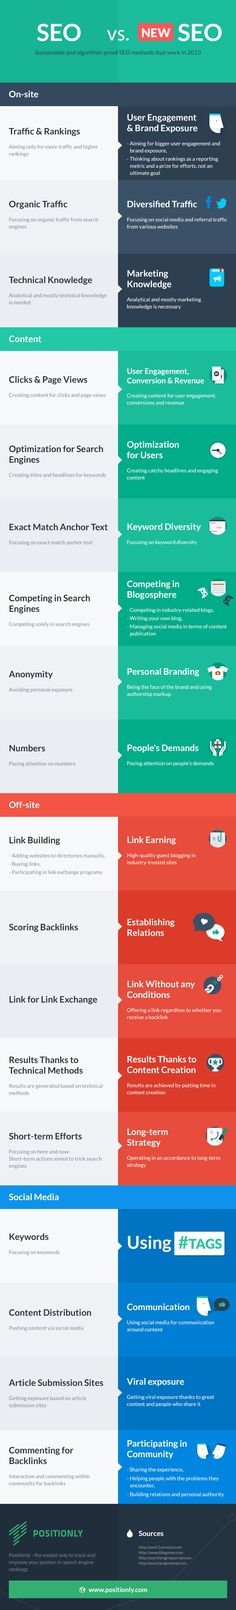 SEO vs. New #SEO – Sustainable and Algorithm-Proof #SearchMarketing Methods That Work - #infographic #SEO #SEM #OrganicSearch #Search #Traffic #Rankings